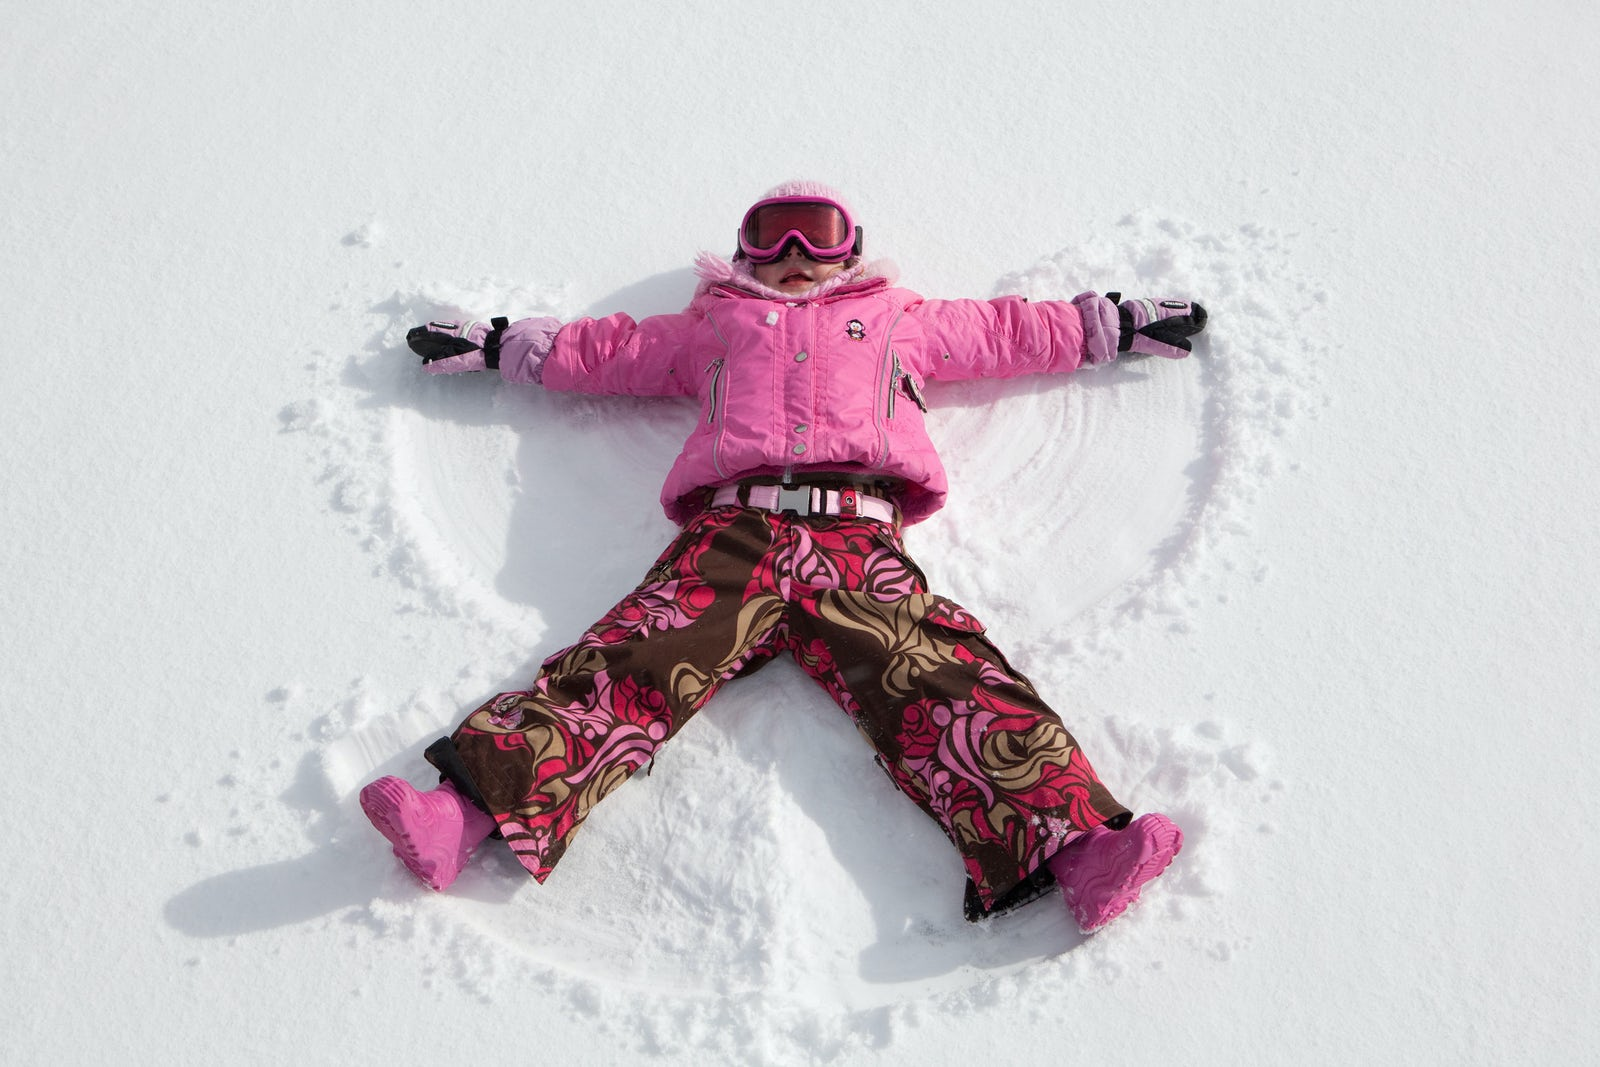 An image of a child playing in snow near the Aria Hotel in winter